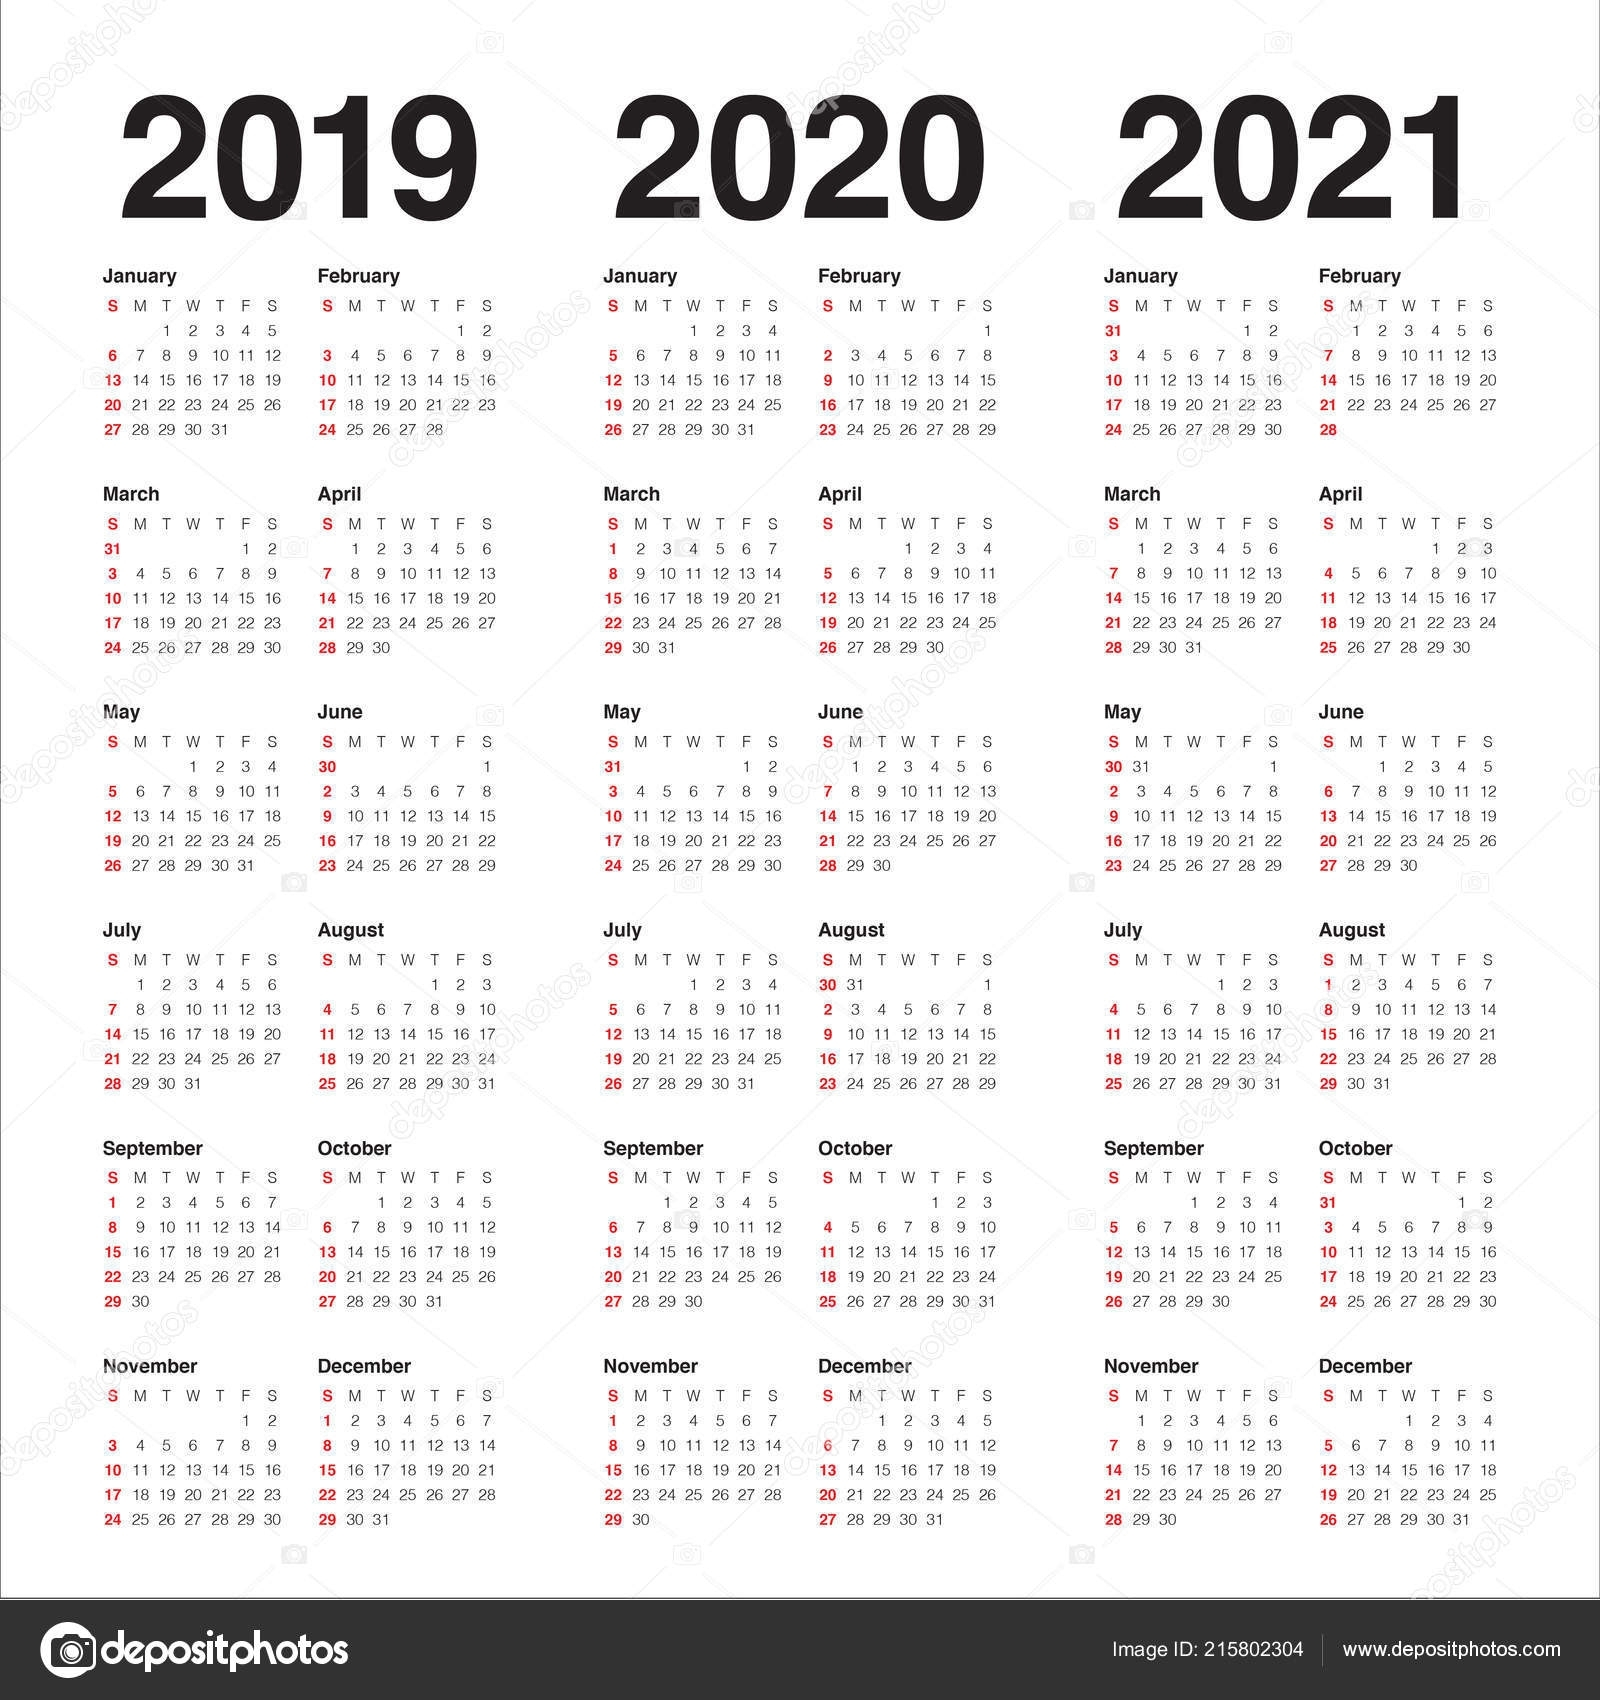 Year 2019 2020 2021 Calendar Vector Design Template Simple with Free Printable Calendar For 2019 2020 2021